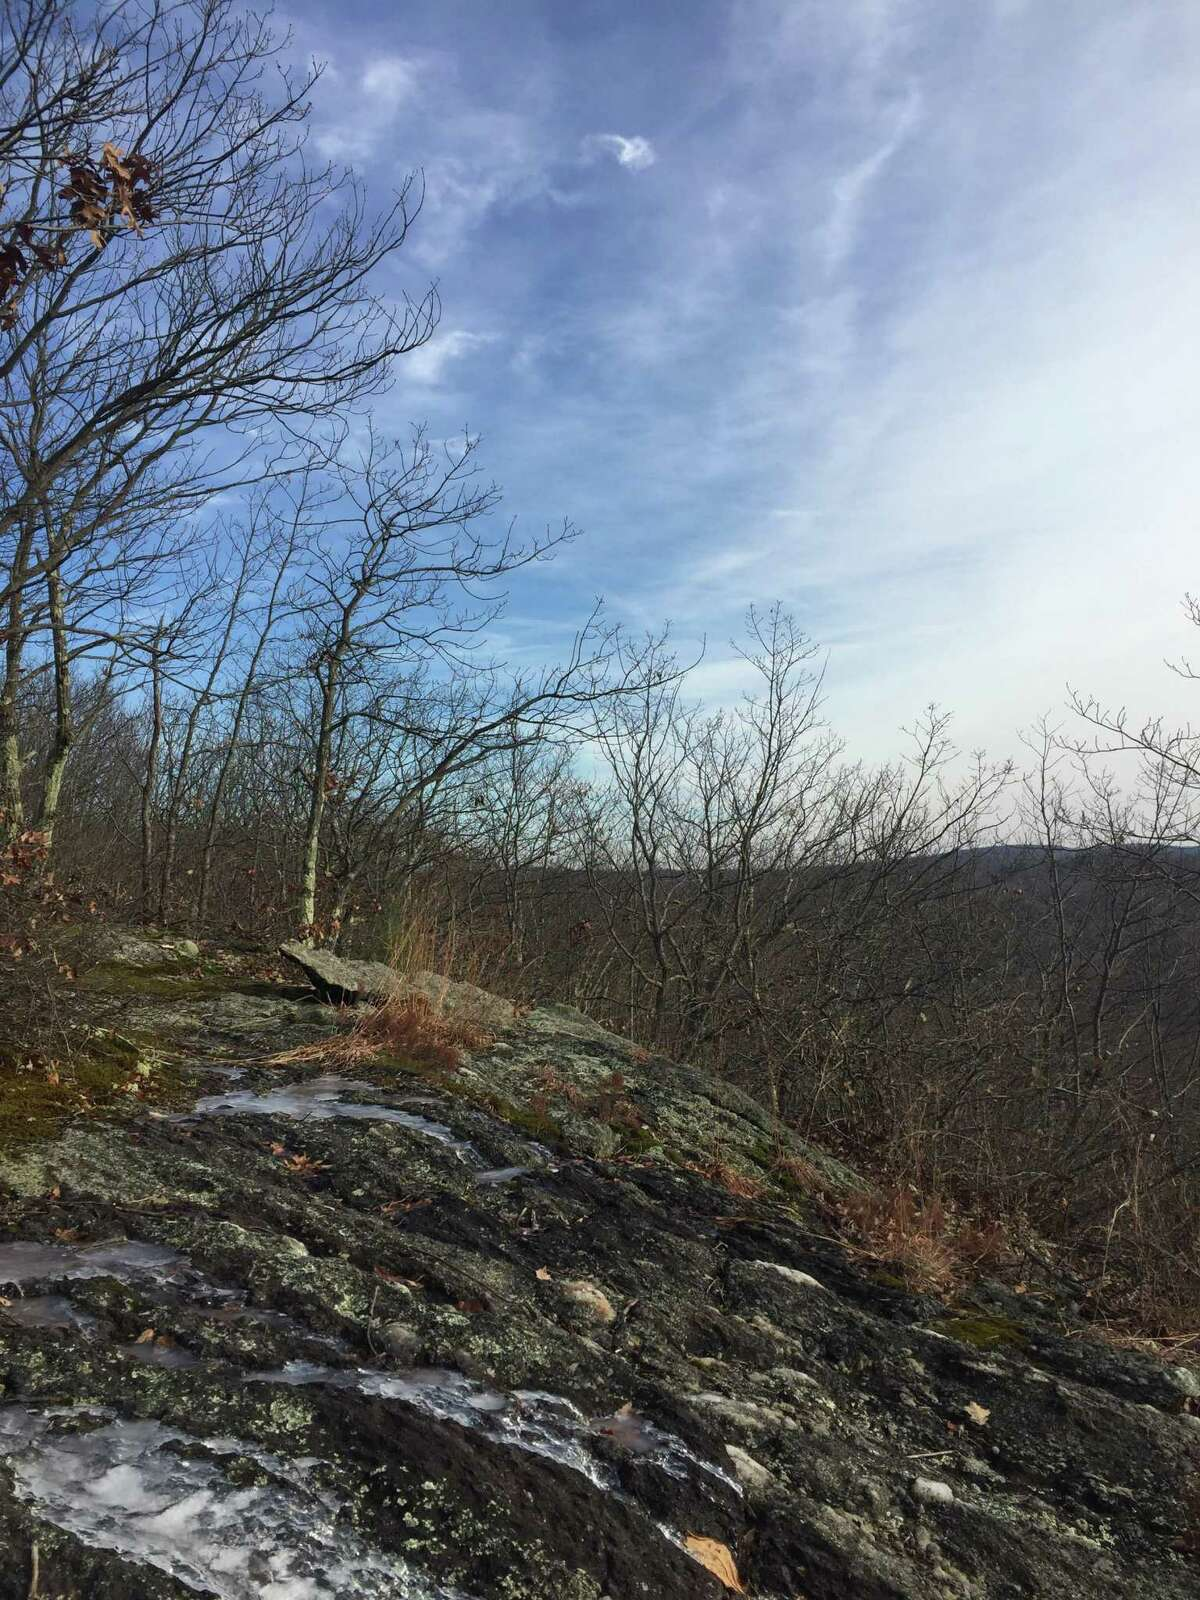 The view from an icy ledge on the Beacon Cap Trail.